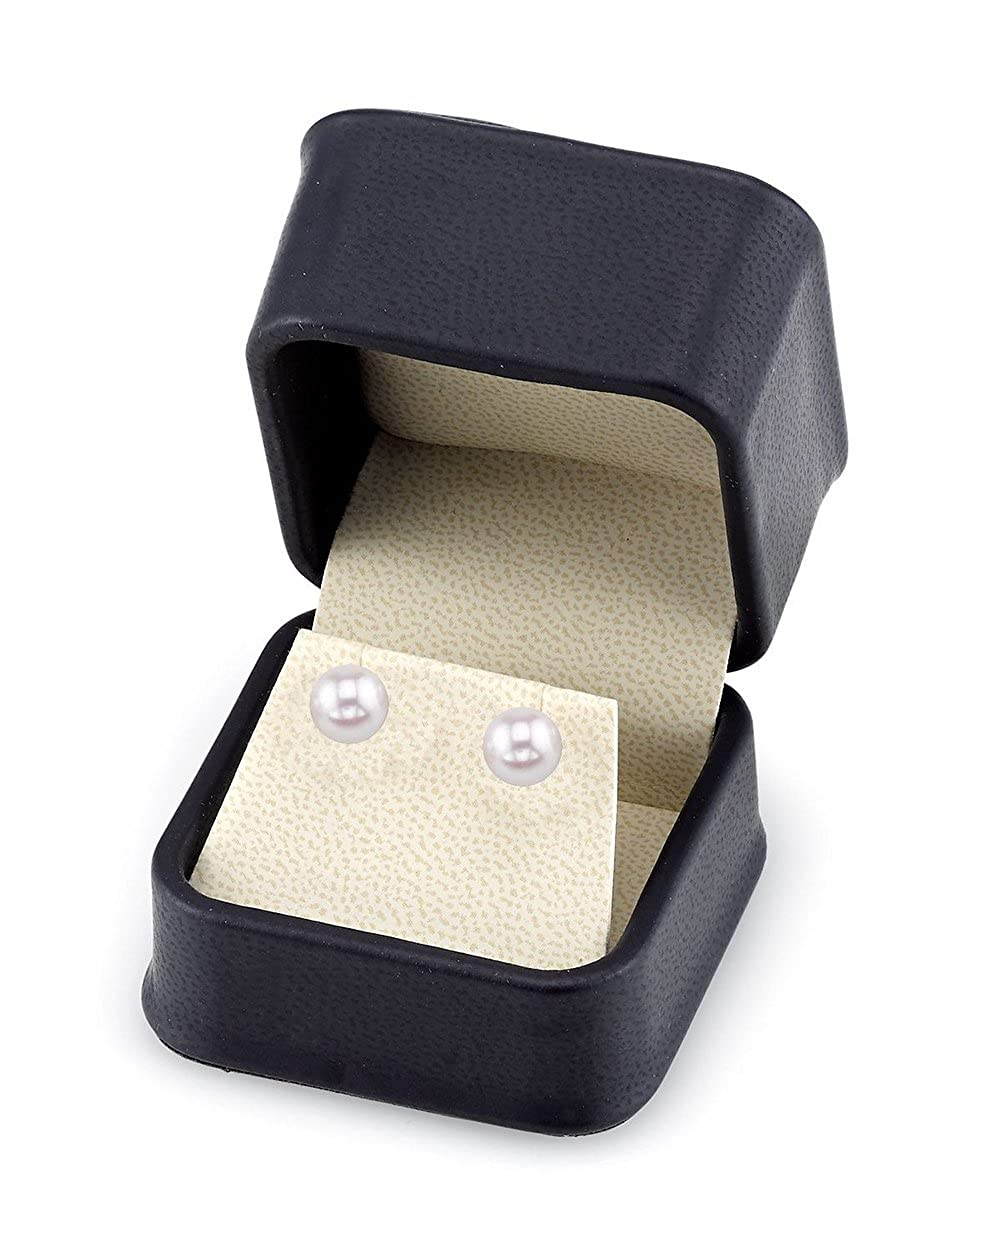 THE PEARL SOURCE 14K Gold Round White Akoya Cultured Pearl Stud Earrings for Women